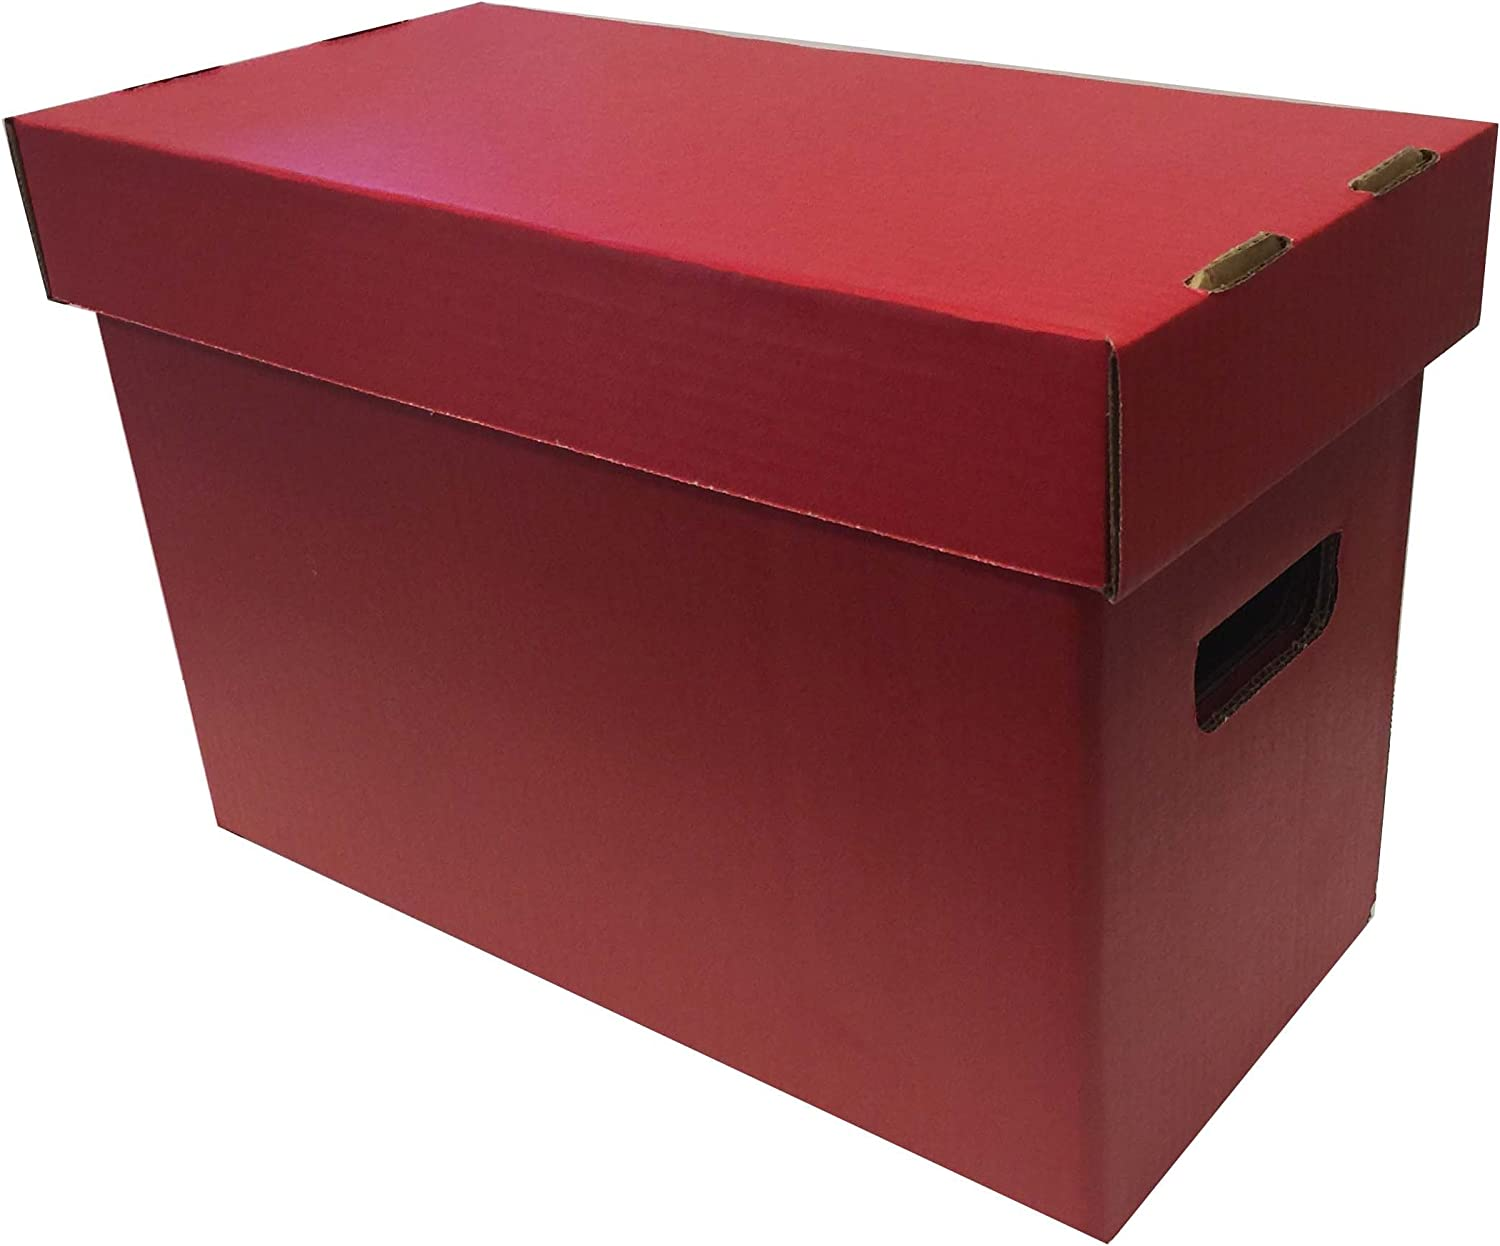 (1) Max Pro Brand SHORT Colored Comic Storage Box - Holds 150 - 175 Comic Books - RED 71iYYZEu2BzL